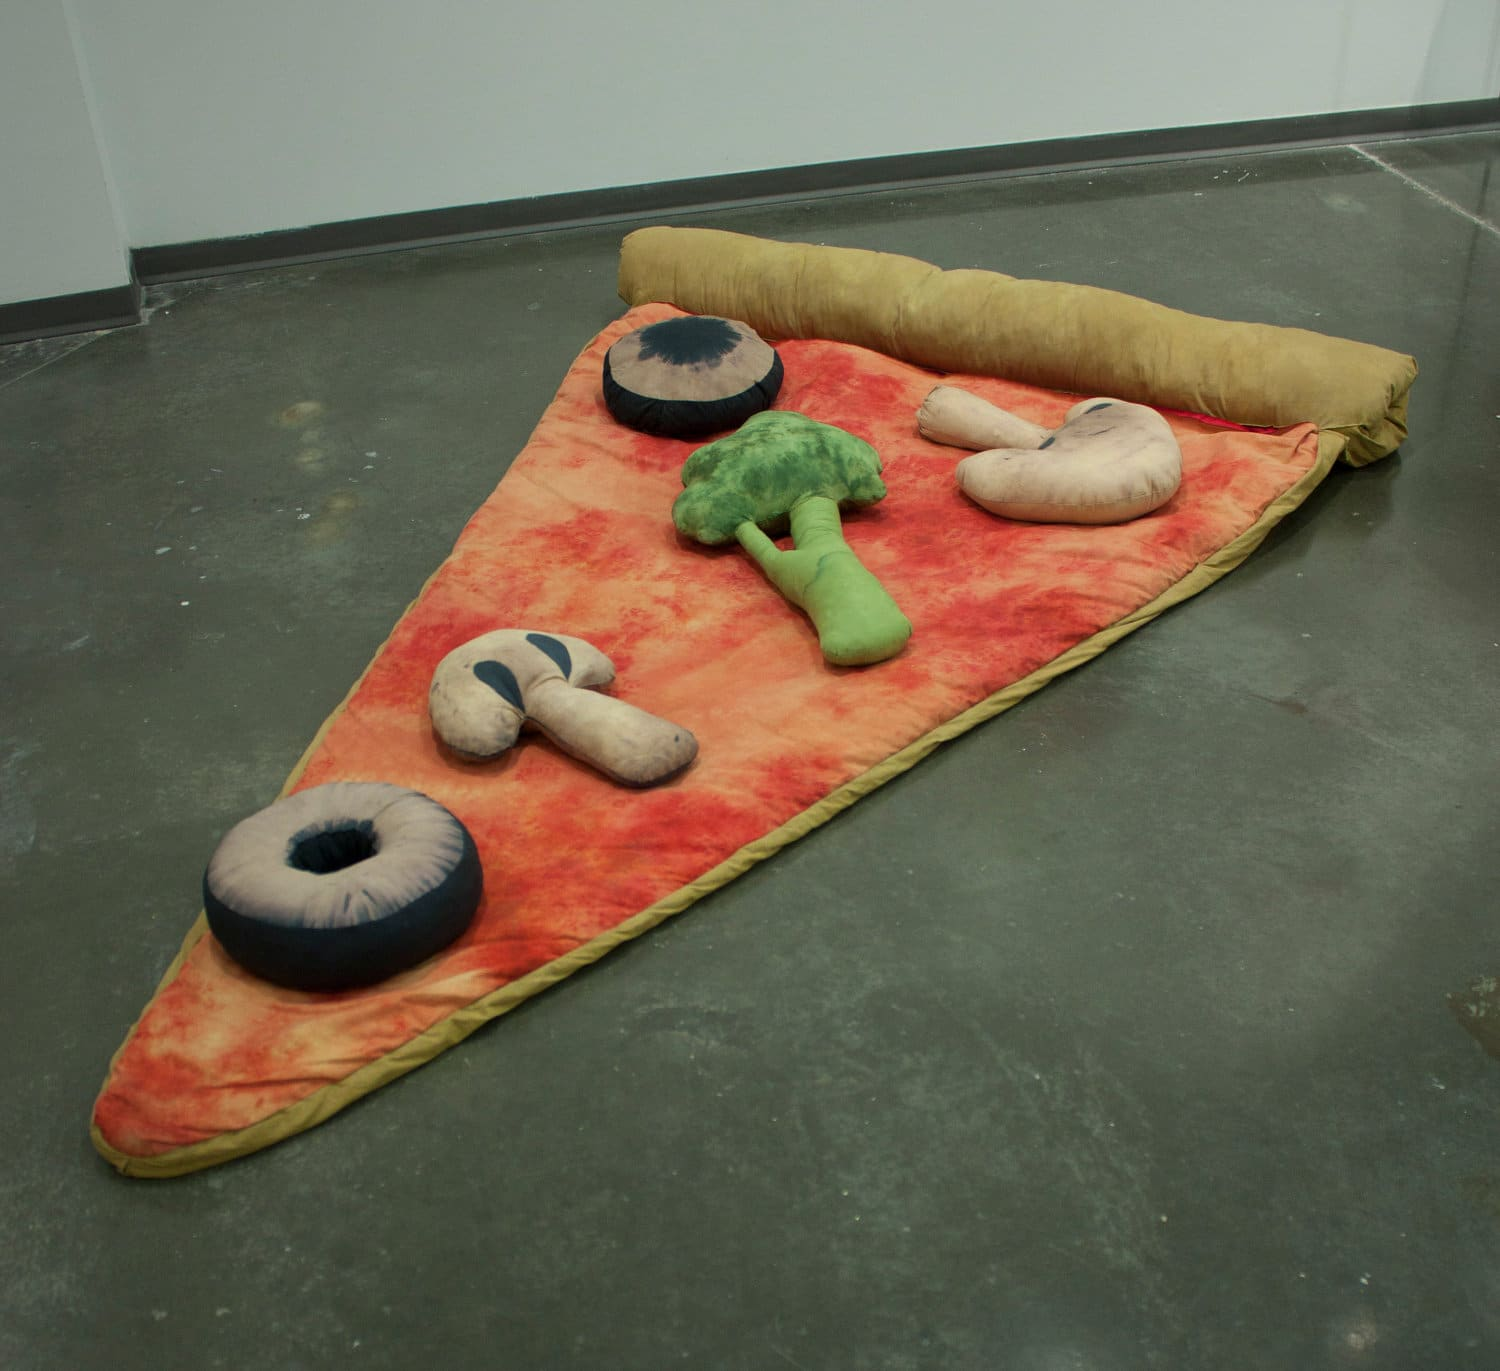 Pizza Slice Sleeping Bag Concept